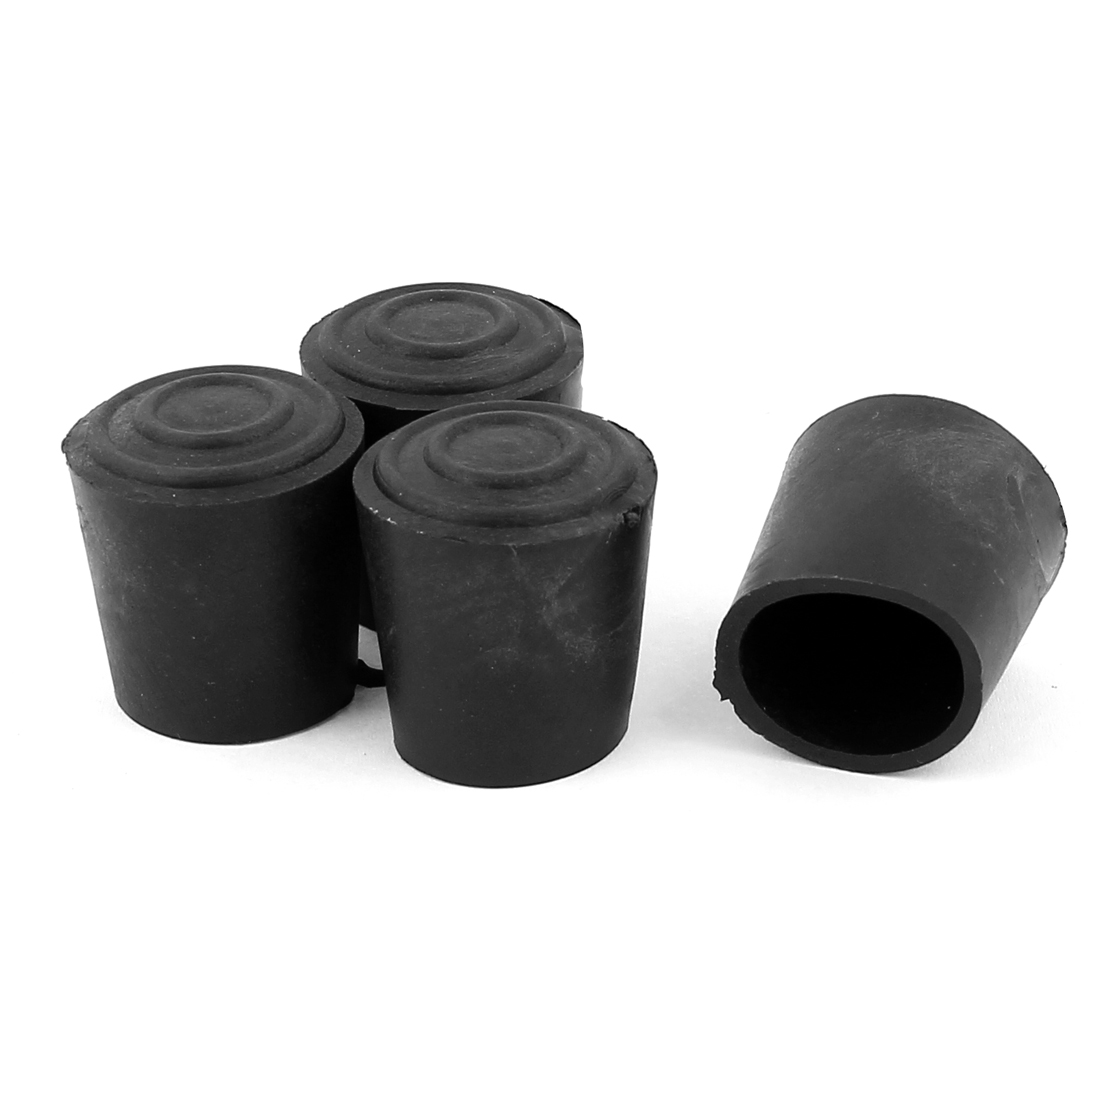 22mm Inner Dia Cylinder Shaped Rubber Furniture Table Leg Cap Foot Protector Cover 4Pcs